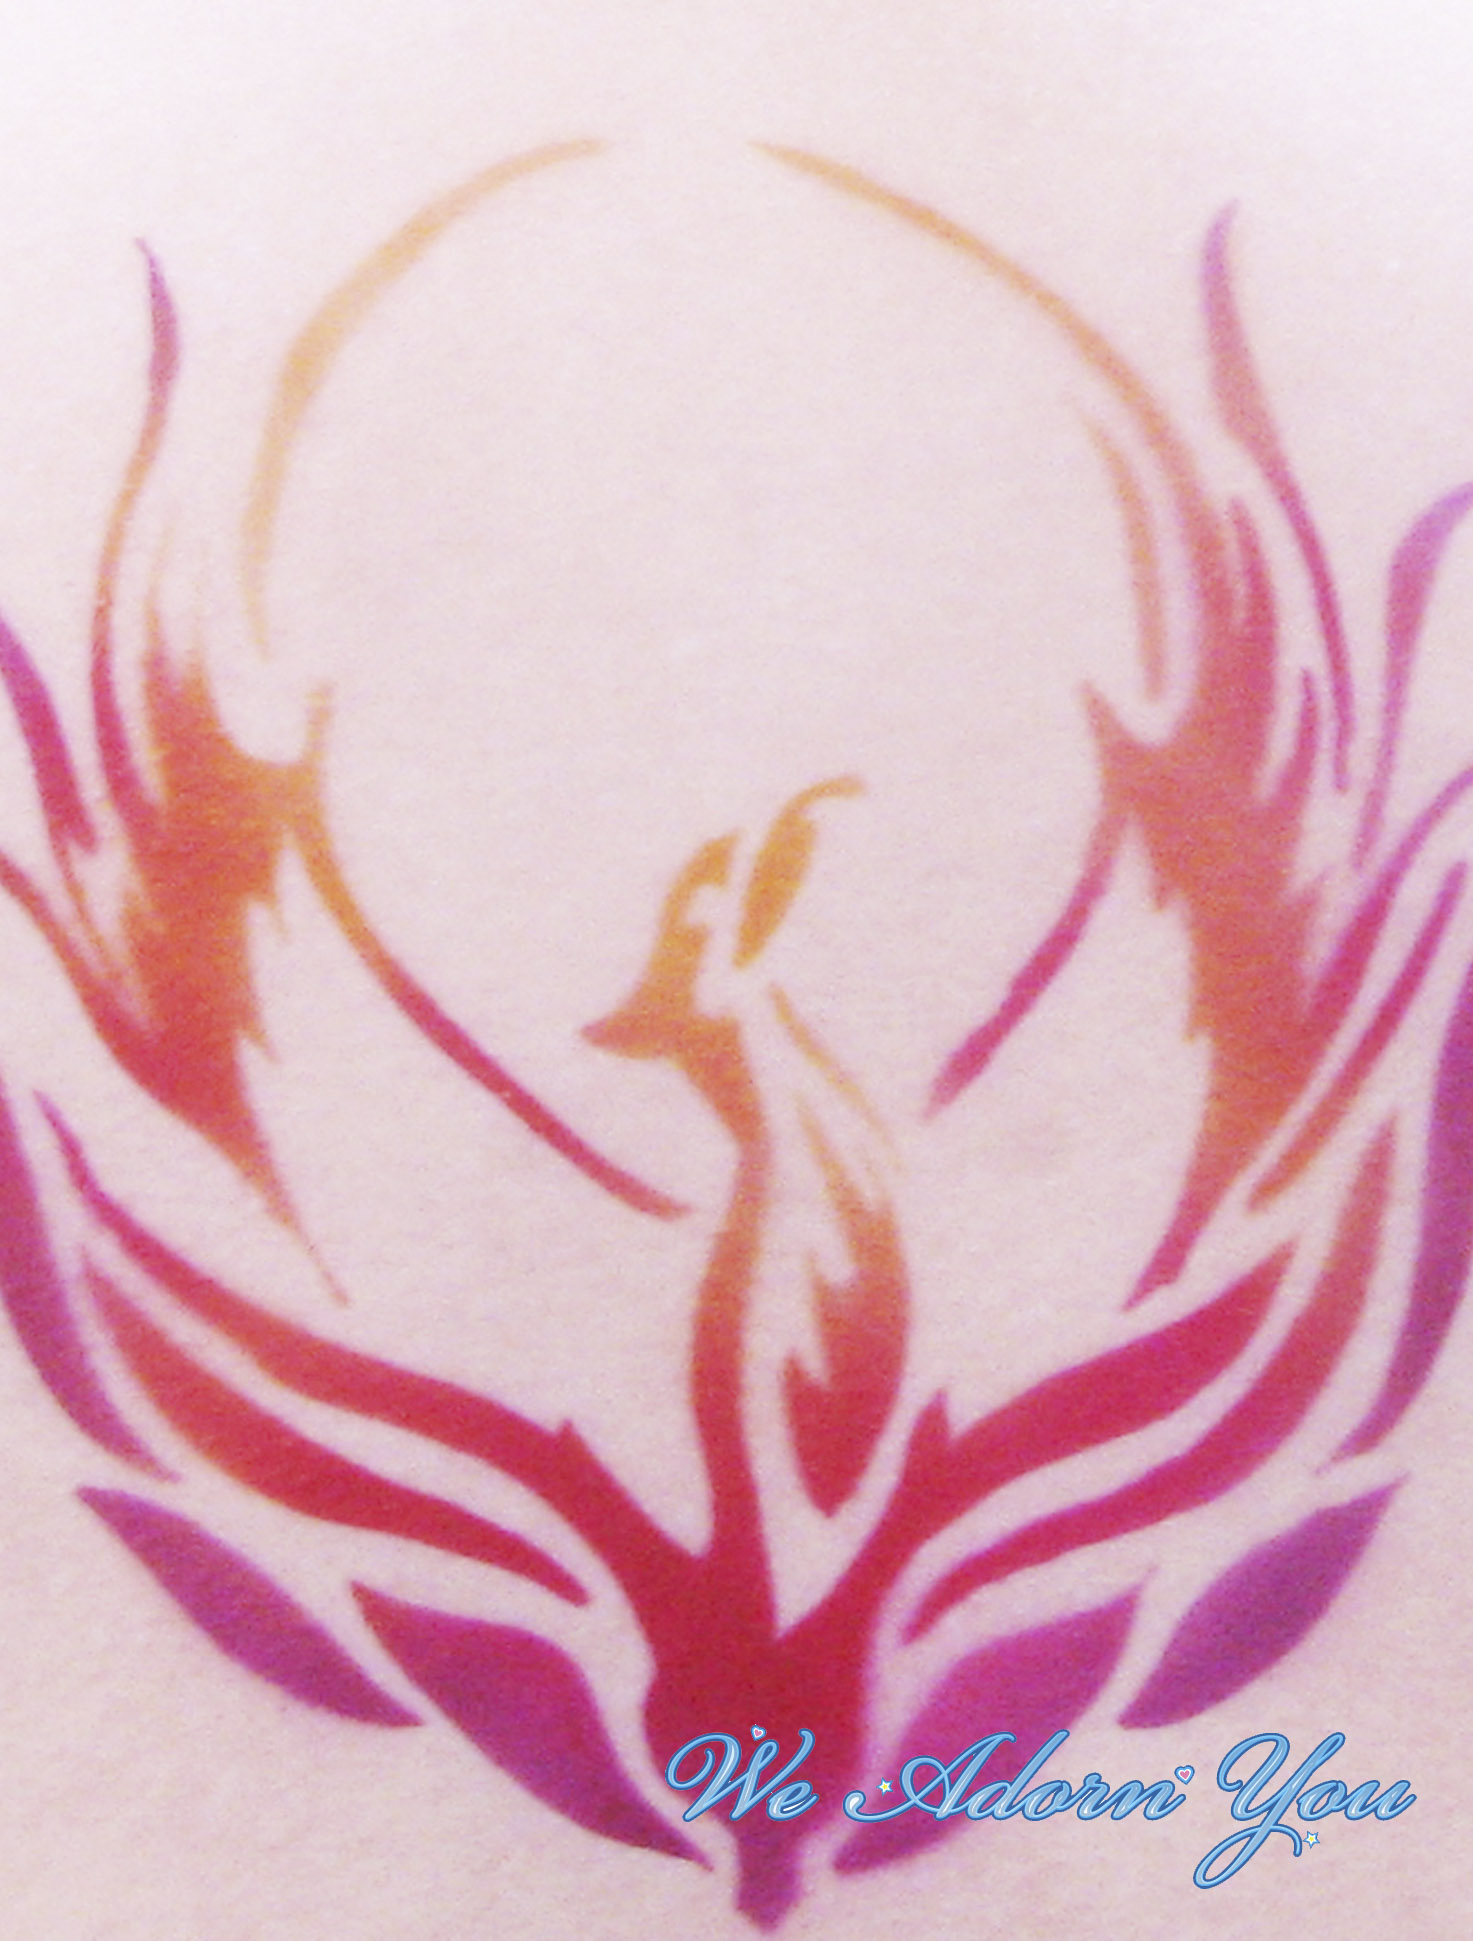 Airbrush Tattoo Phenoix - We Adorn You.jpg